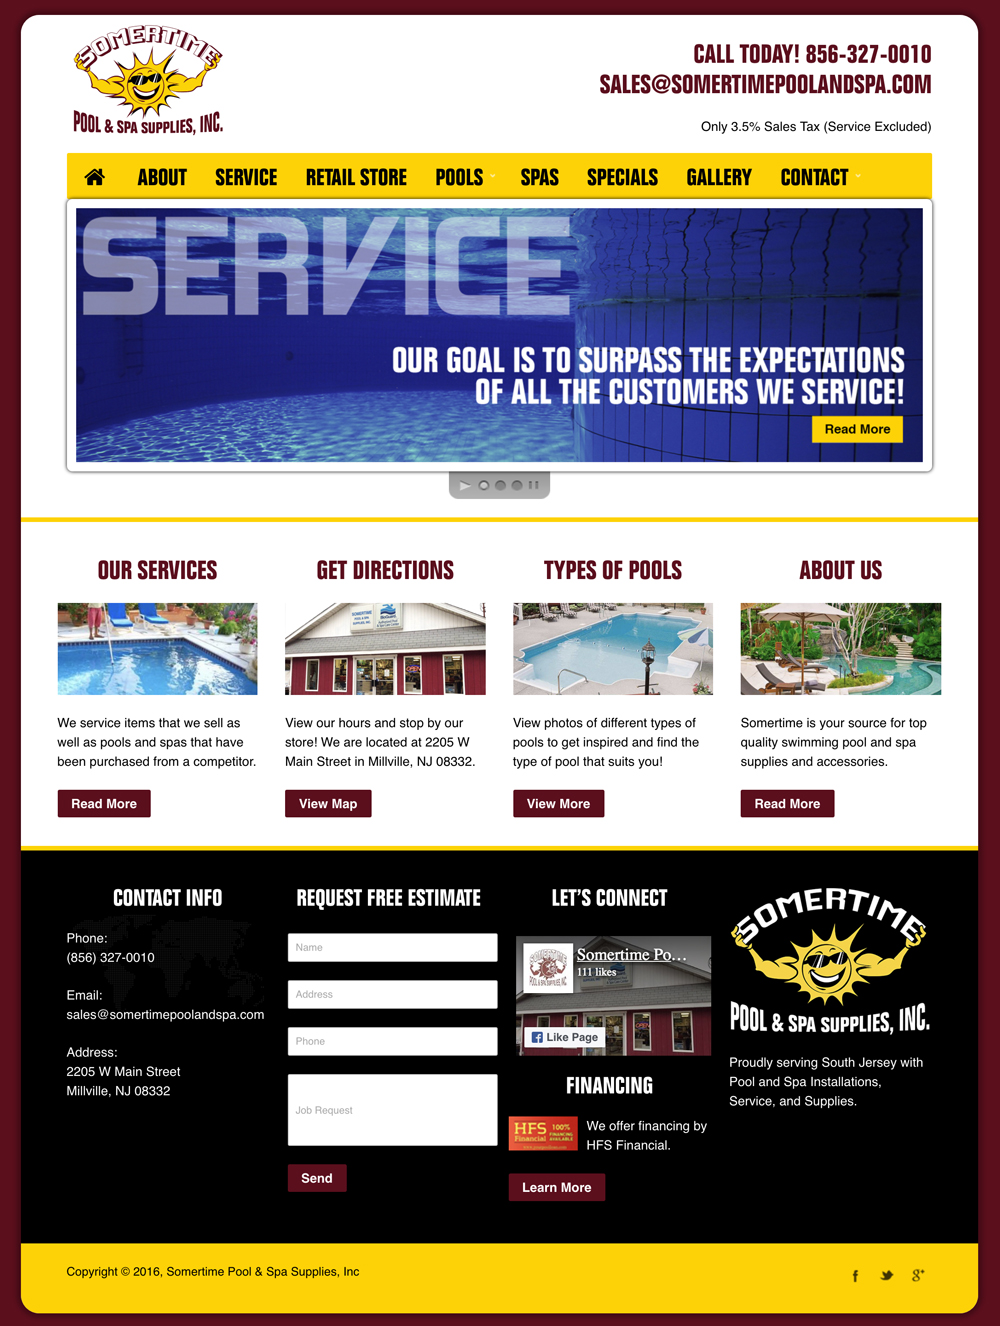 Somertime Pool and Spa Services Millville, NJ Website Graphic Design